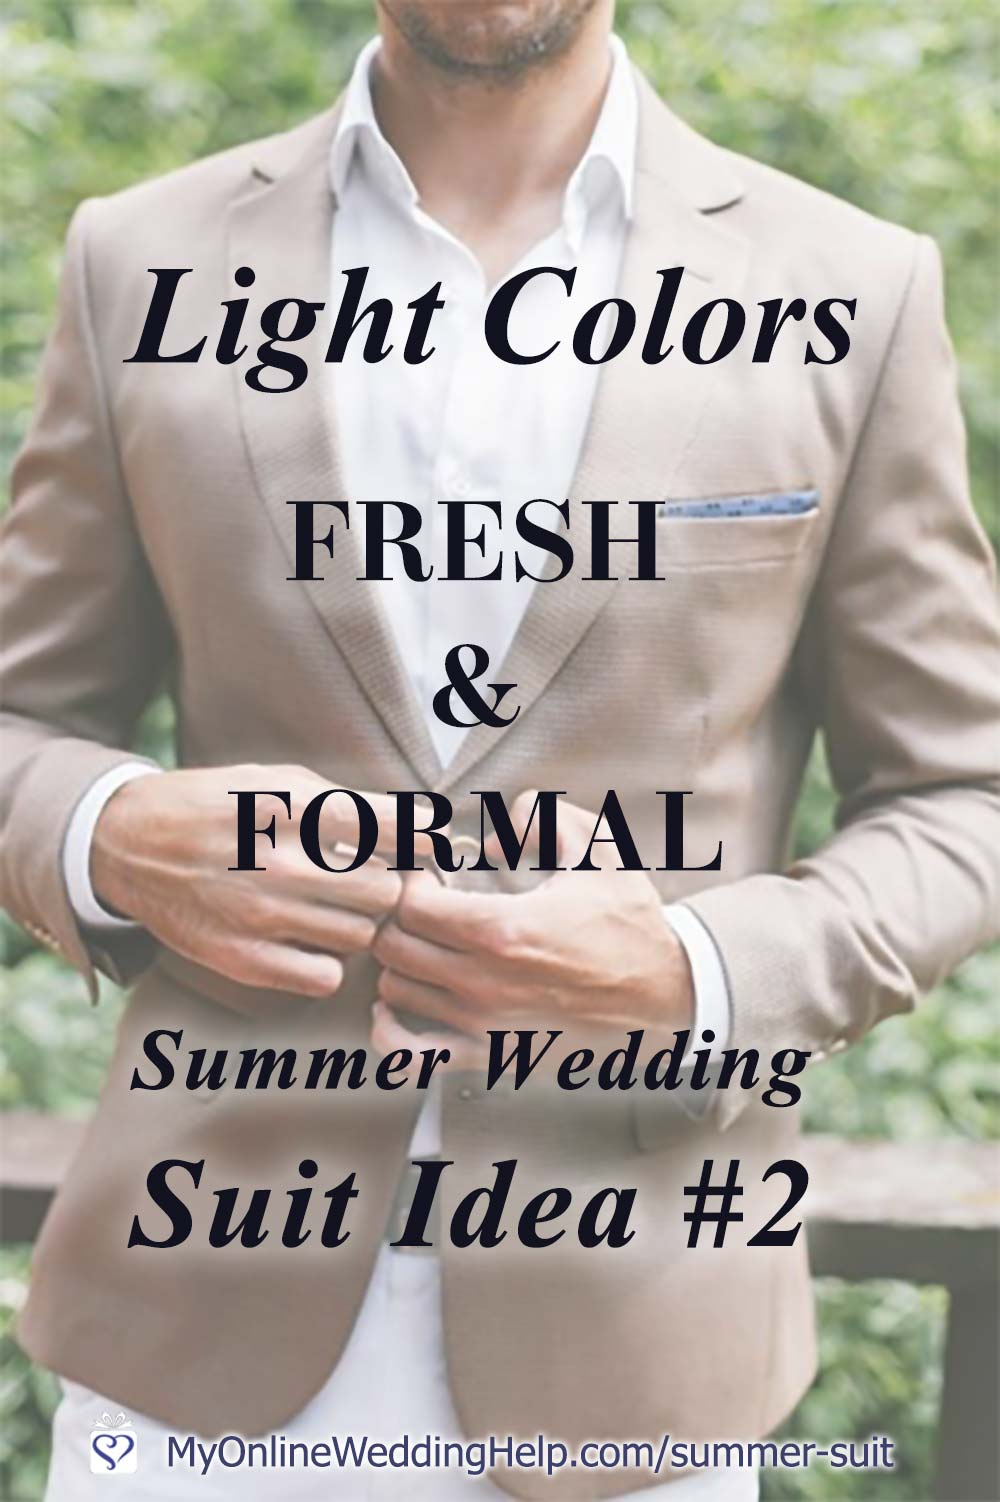 Ideas for putting together a classy men's summer wedding suit that's both formal and comfortable. These five ideas will have your guy outfitted in attire that's both appropriate and fresh. Whether he's a guest, groomsman, or groom. The second tip is choose light colors. Next, ... read them all on the My Online Wedding Help Blog. #WeddingOutfits #SummerWedding #Groomswear #Groomsmen #SummerSuit #FormalAttire